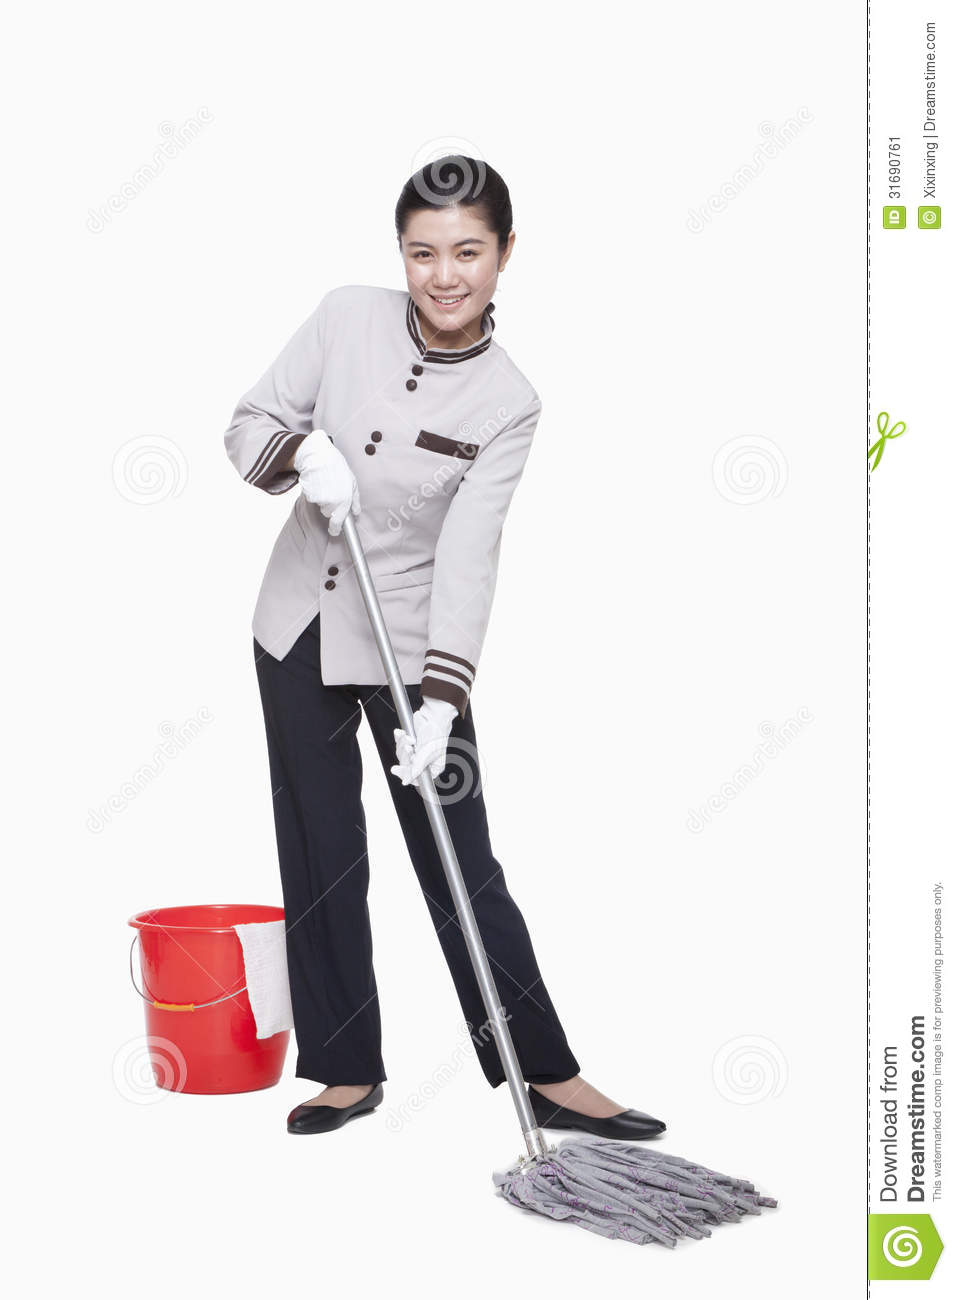 Young Female Caretaker Cleaning With Bucket And Mop